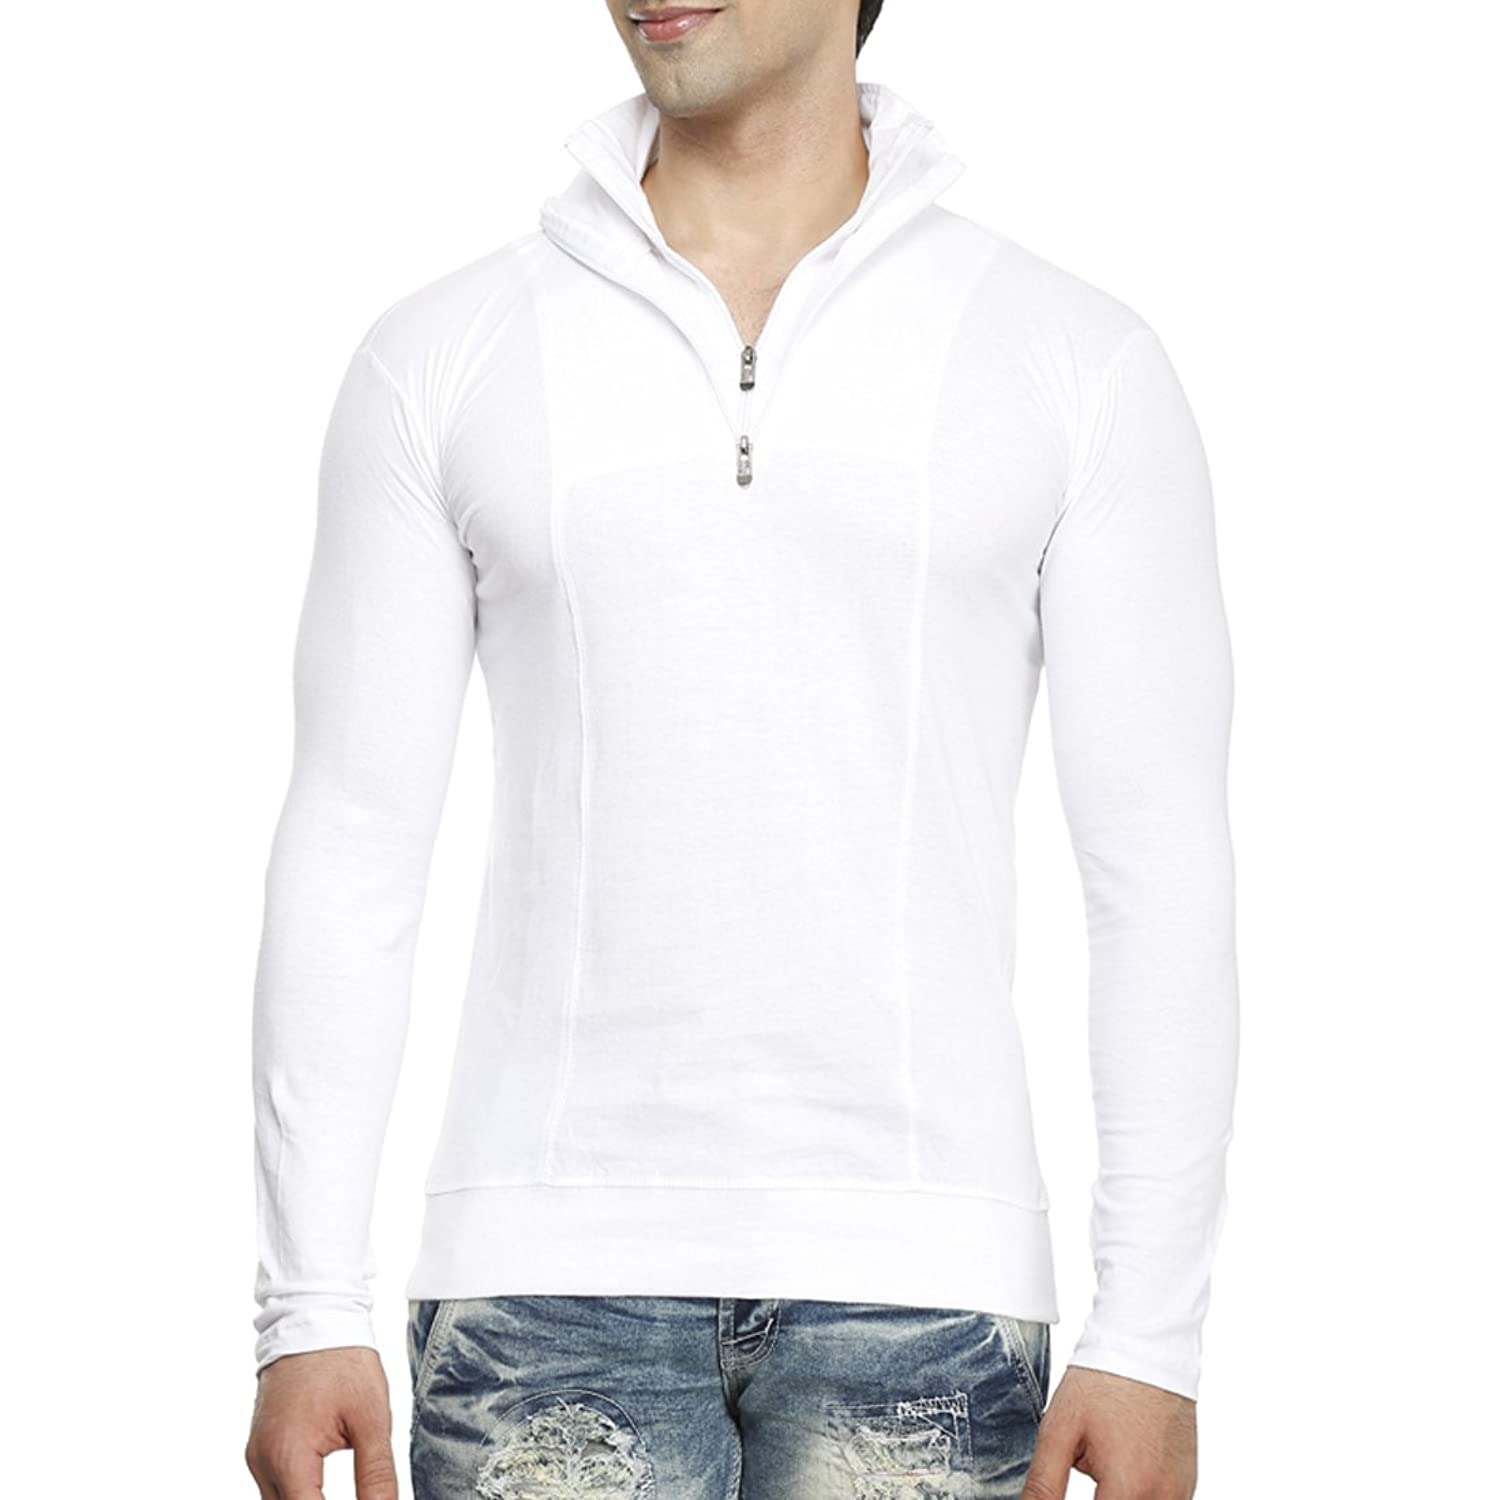 Tees collection men s half zip double flap collar full sleeve cotton t shirt amazon in clothing accessories